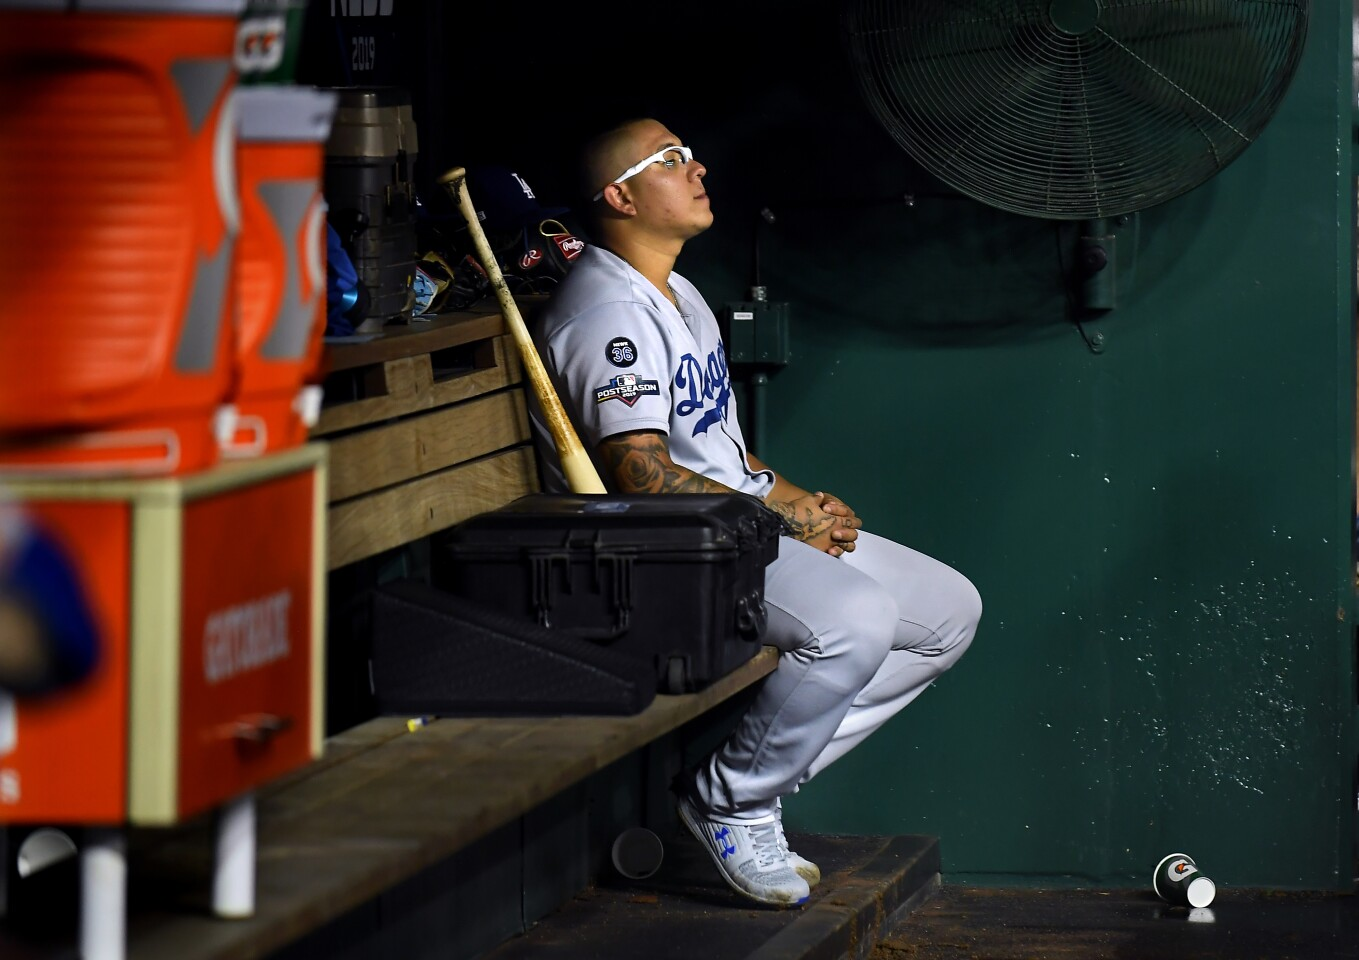 WASHINGTON D.C., OCTOBER 7, 2019-Dodgers relief pitcher Julio Urias sits in the dugout alone after giving up three runs against the Nationals in Game 4 of the NLDS at Nationals Stadium Monday. (Wally Skalij/Los Angeles Times)